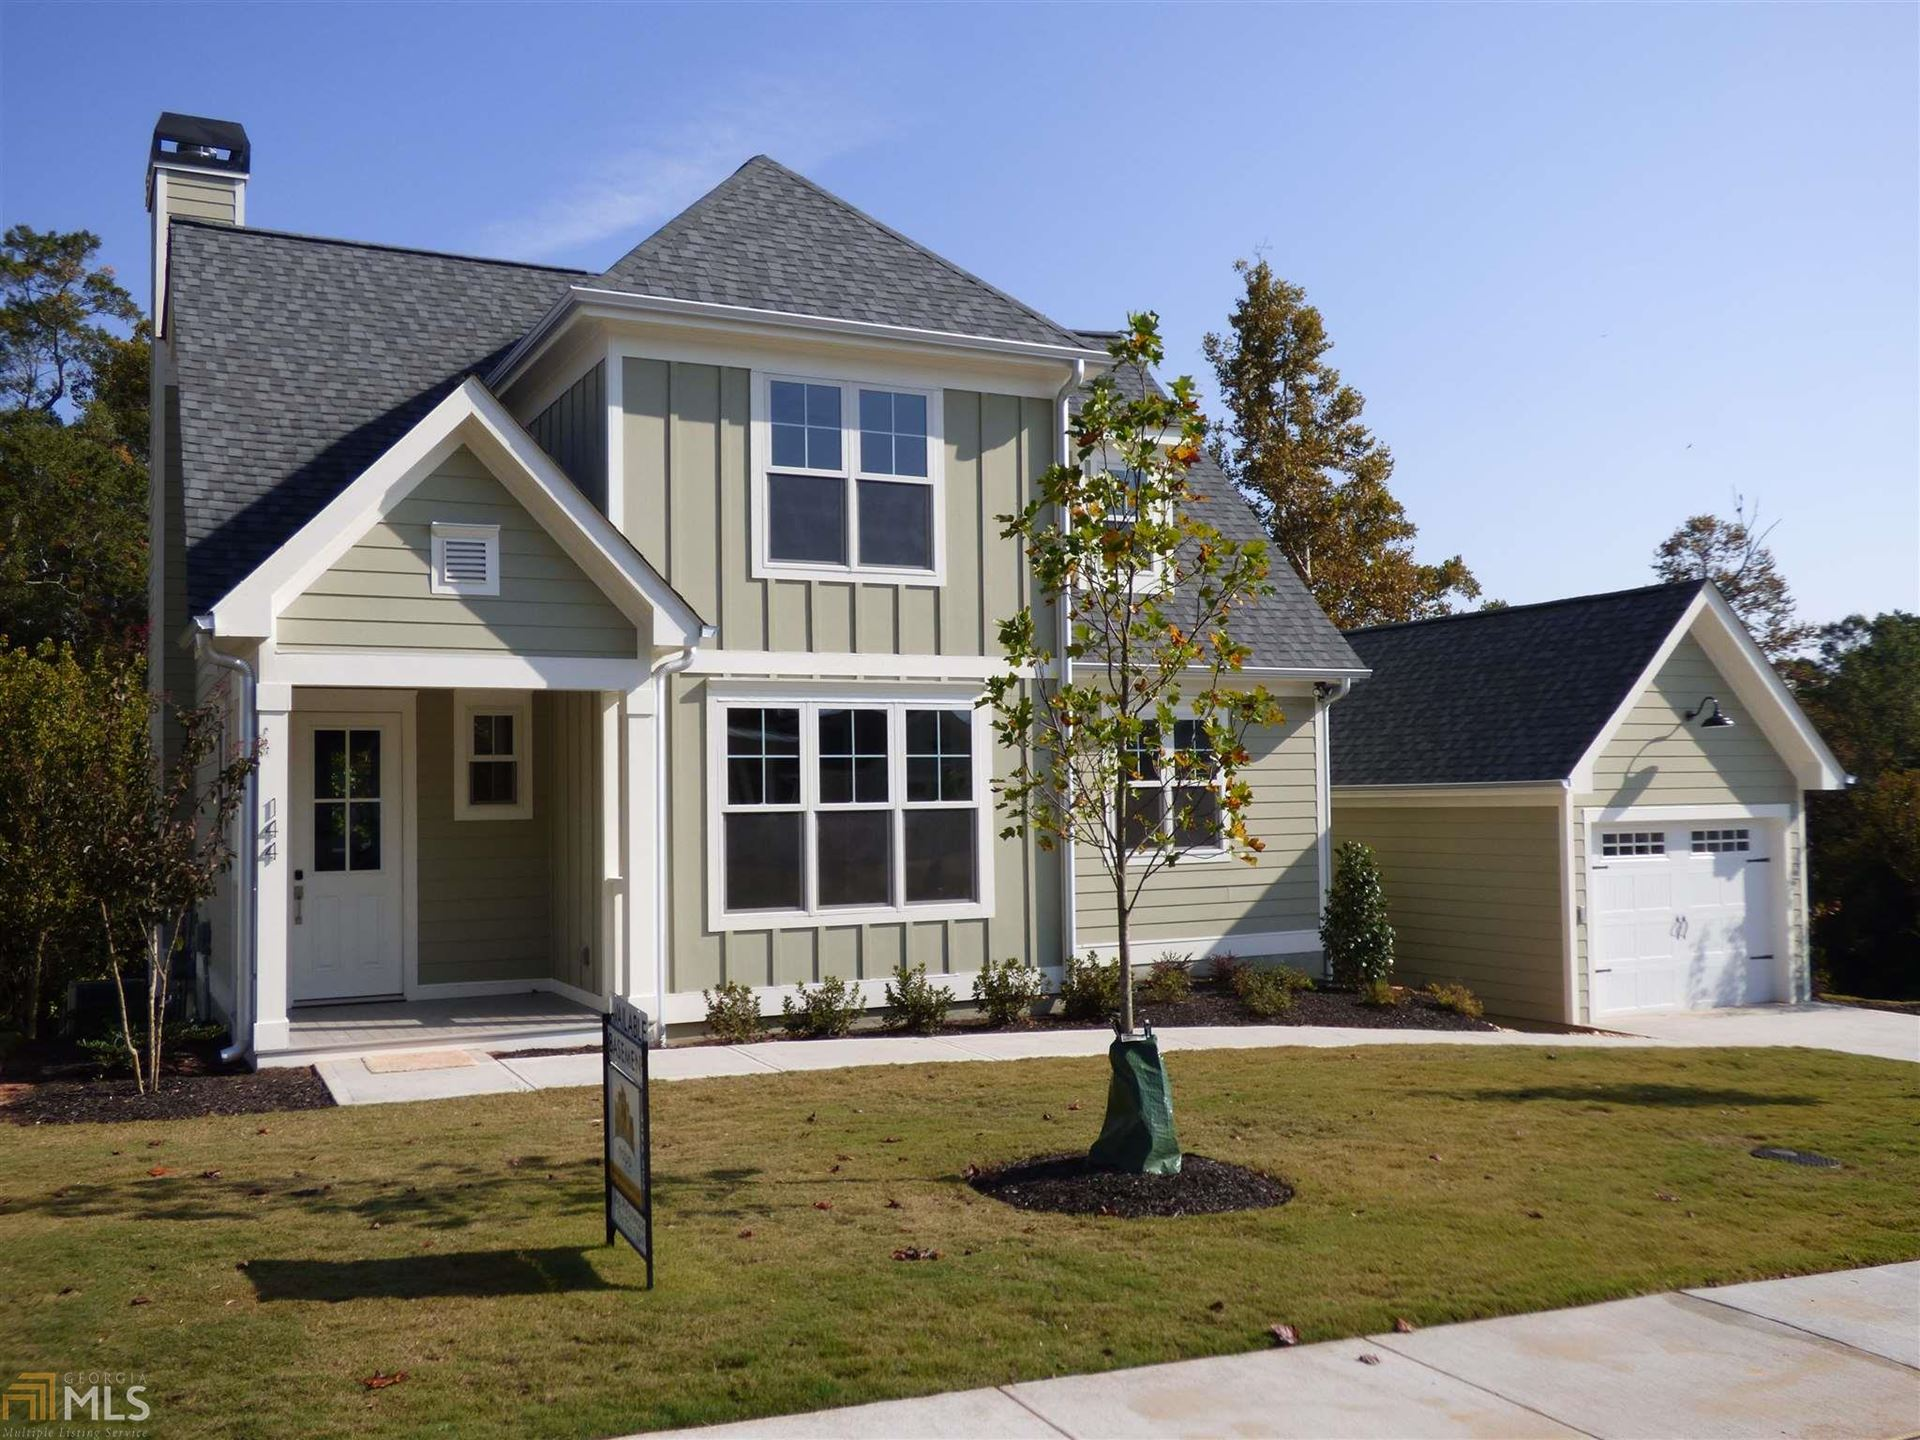 144 Steepleview Dr, Athens, GA 30606 - #: 8801036